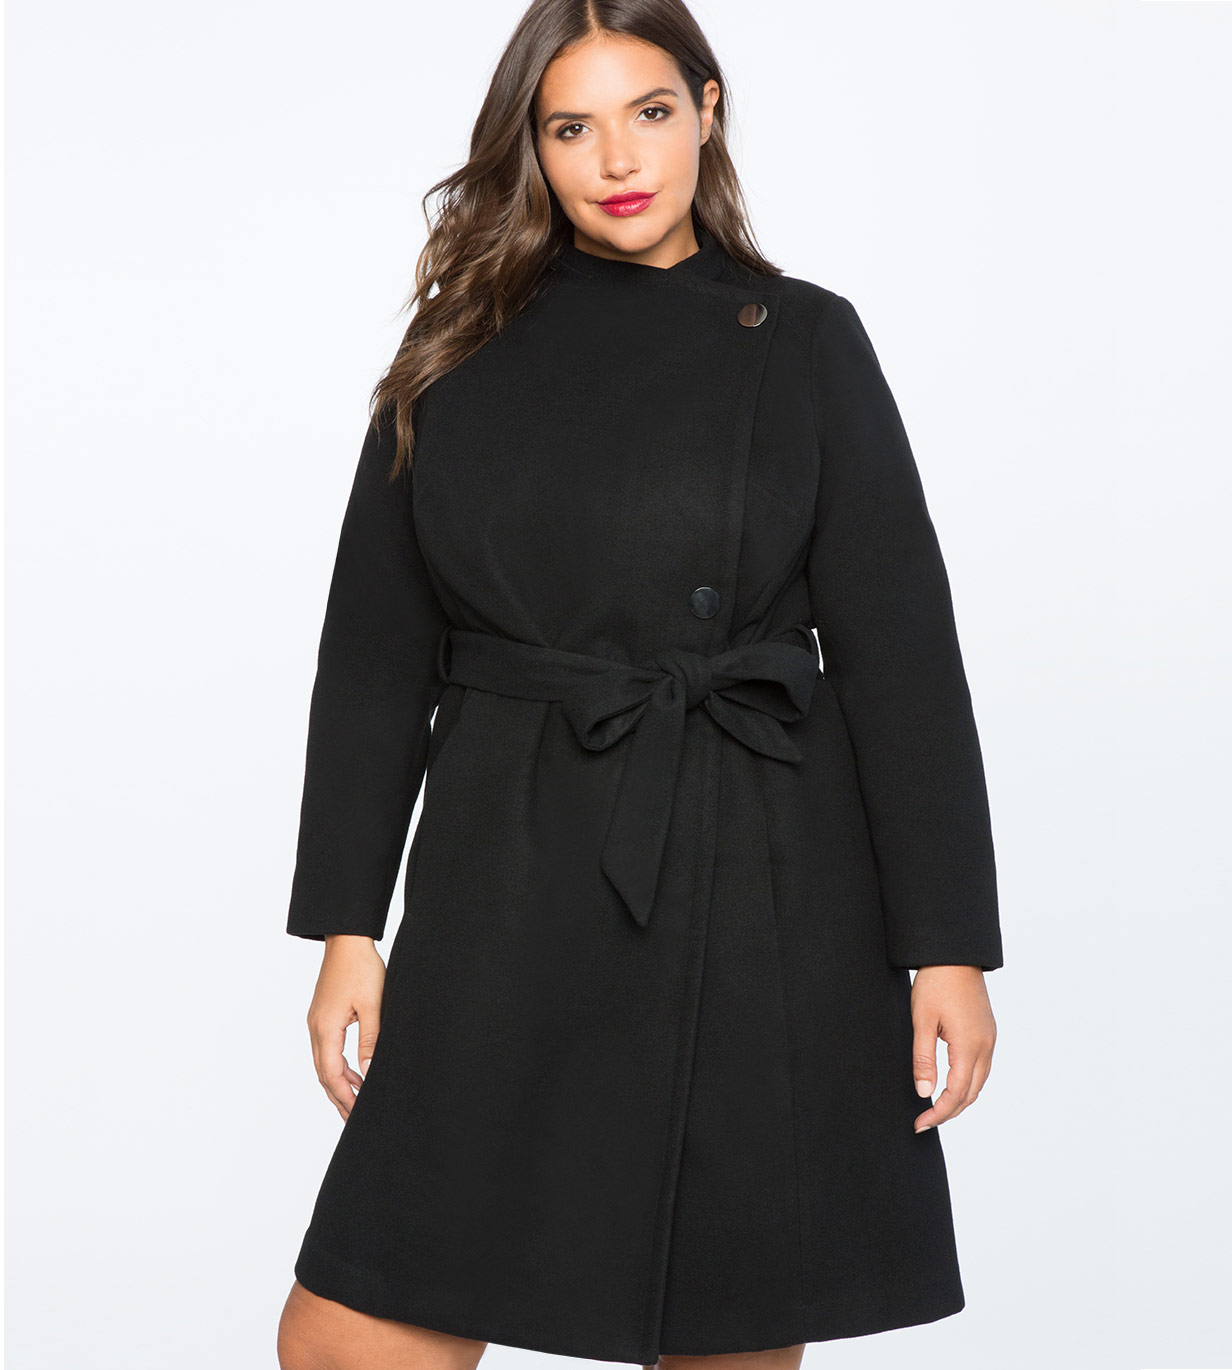 63233bec7f7 There Are Amazing Deals on Winter Coats Right Now—Shop These Under ...